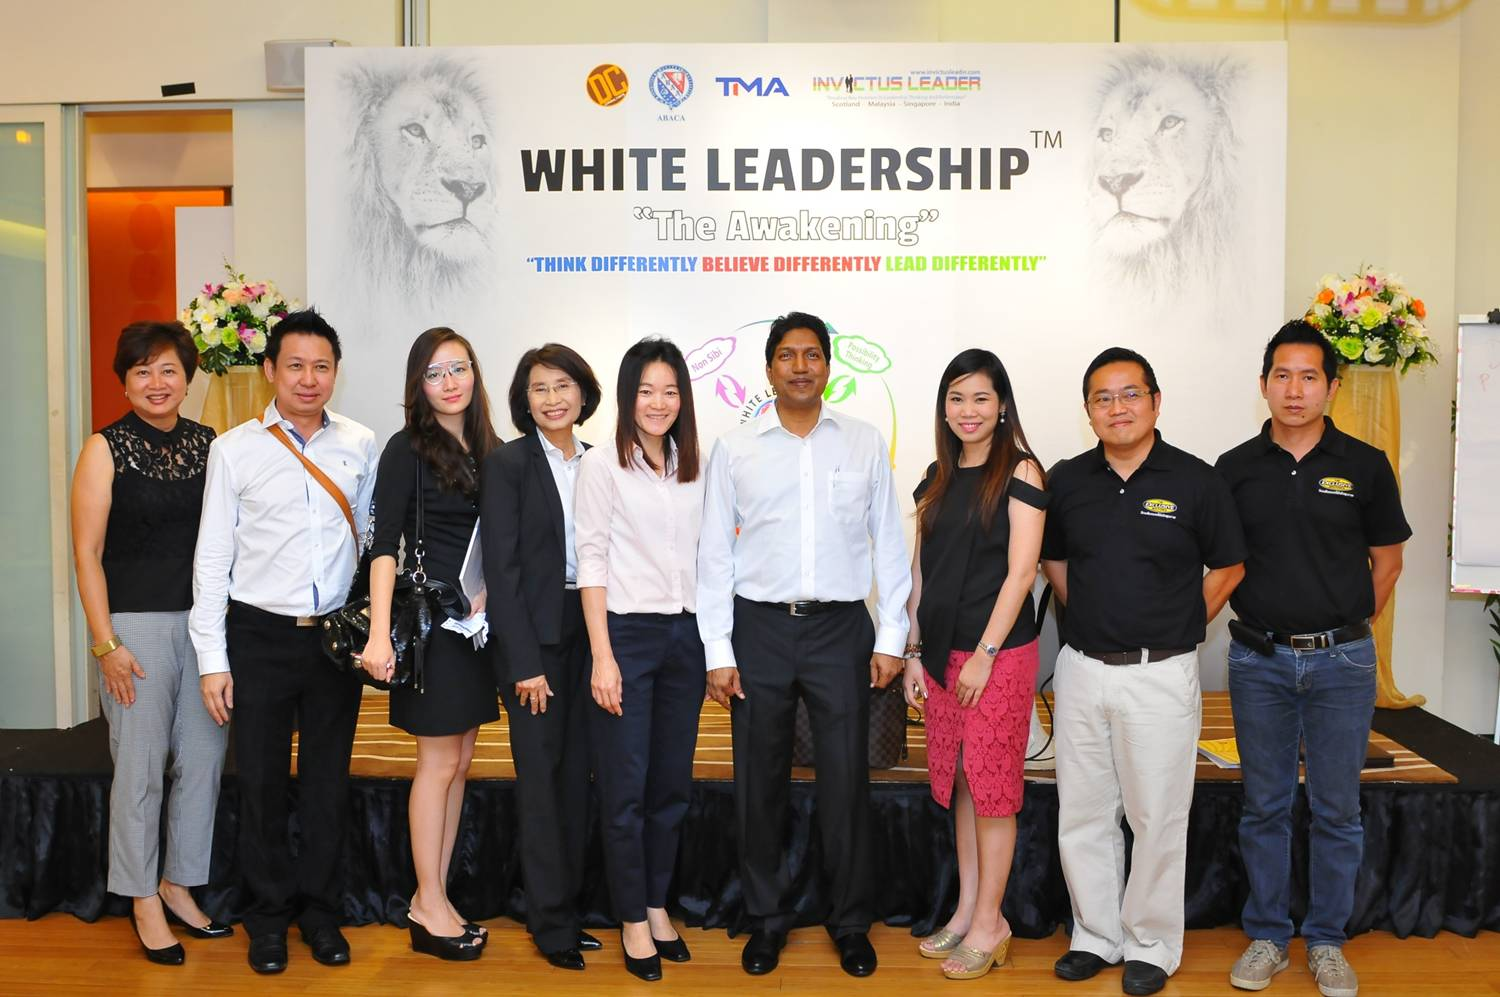 Executive W.H.I.T.E. Leadership™: The Awakening, 25 May 2015, Thailand